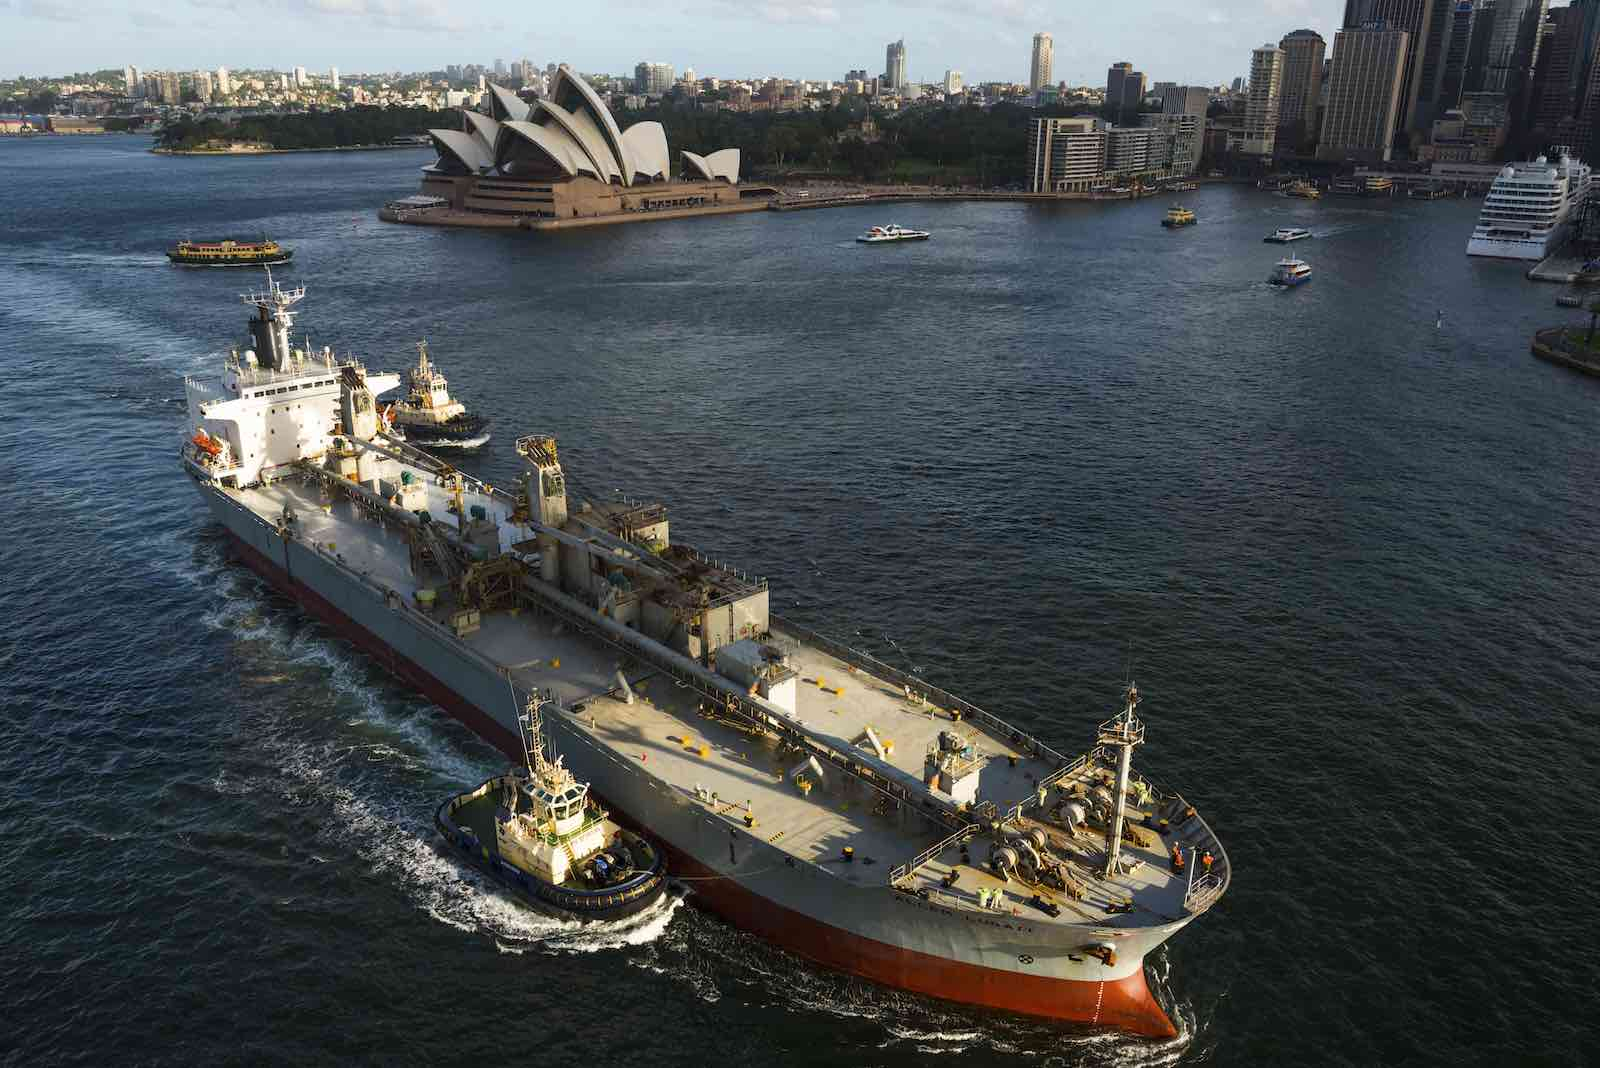 An oil tanker in Sydney Harbour, 2017 (Universal Images Group/Getty Images)